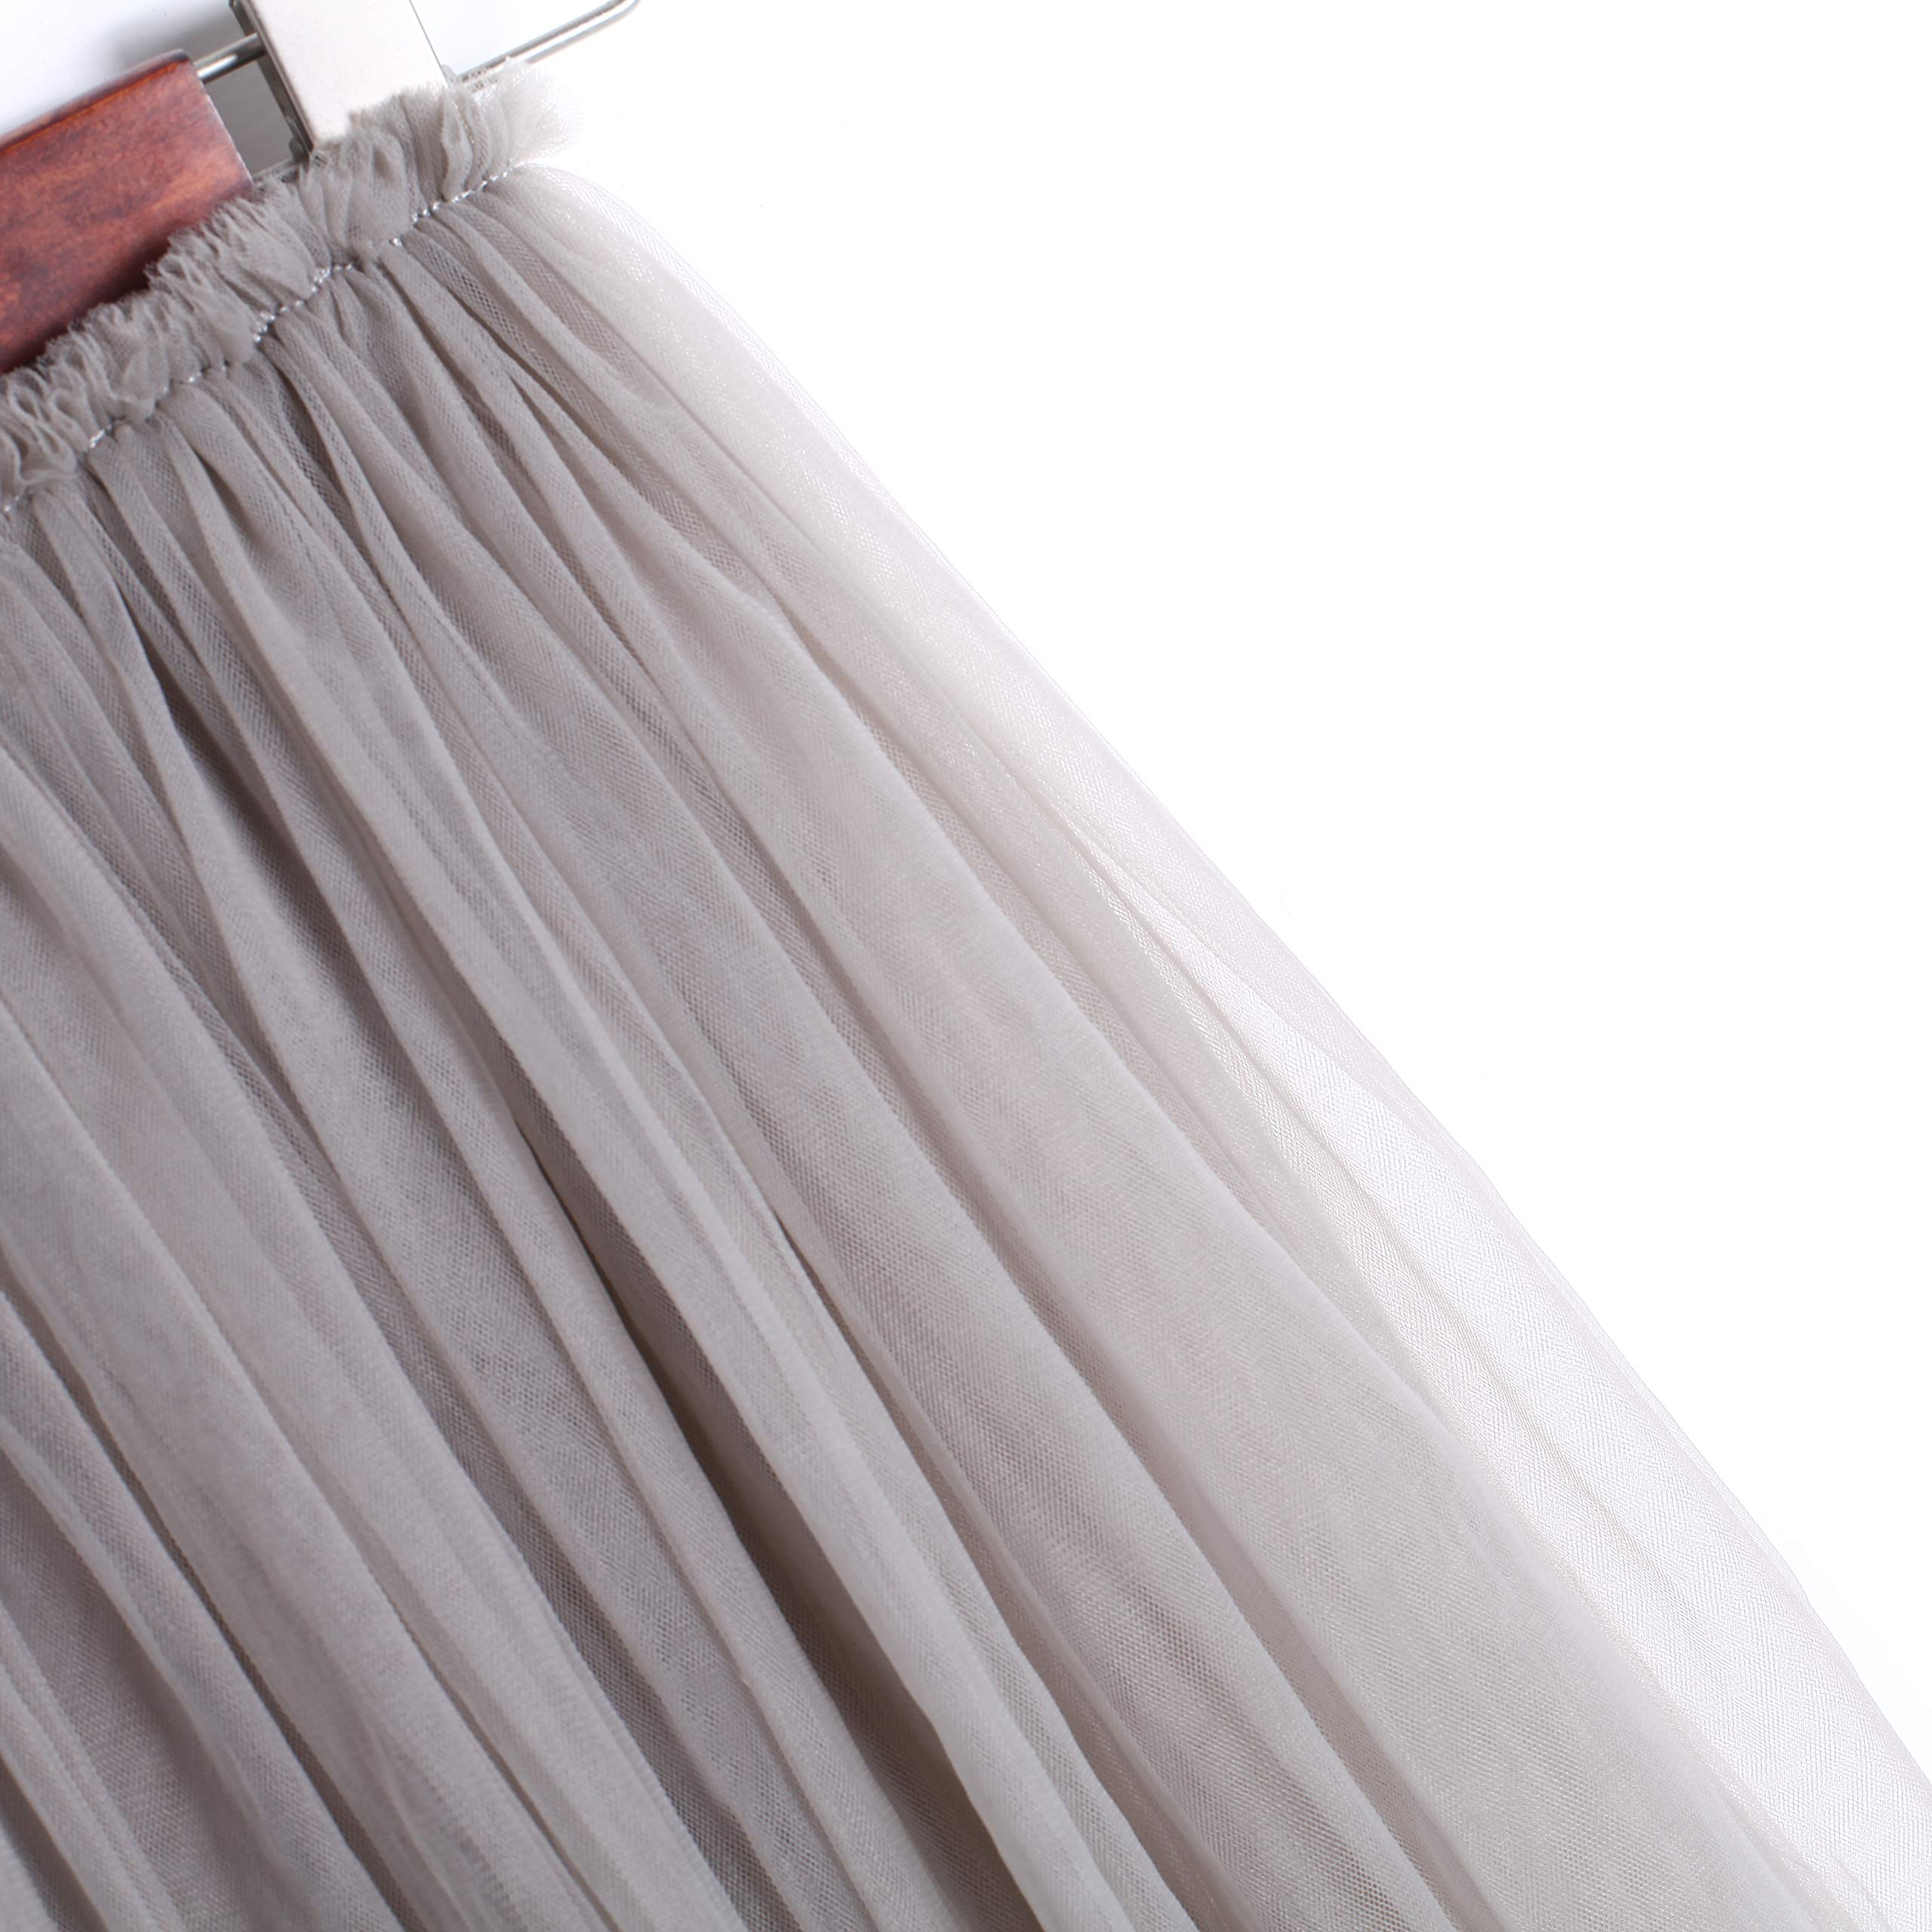 Flofallzique Tulle Tutu Girls Skirts for 1-12 Years Old Dancing Party Toddler Clothes(6, Gray) by Flofallzique (Image #4)